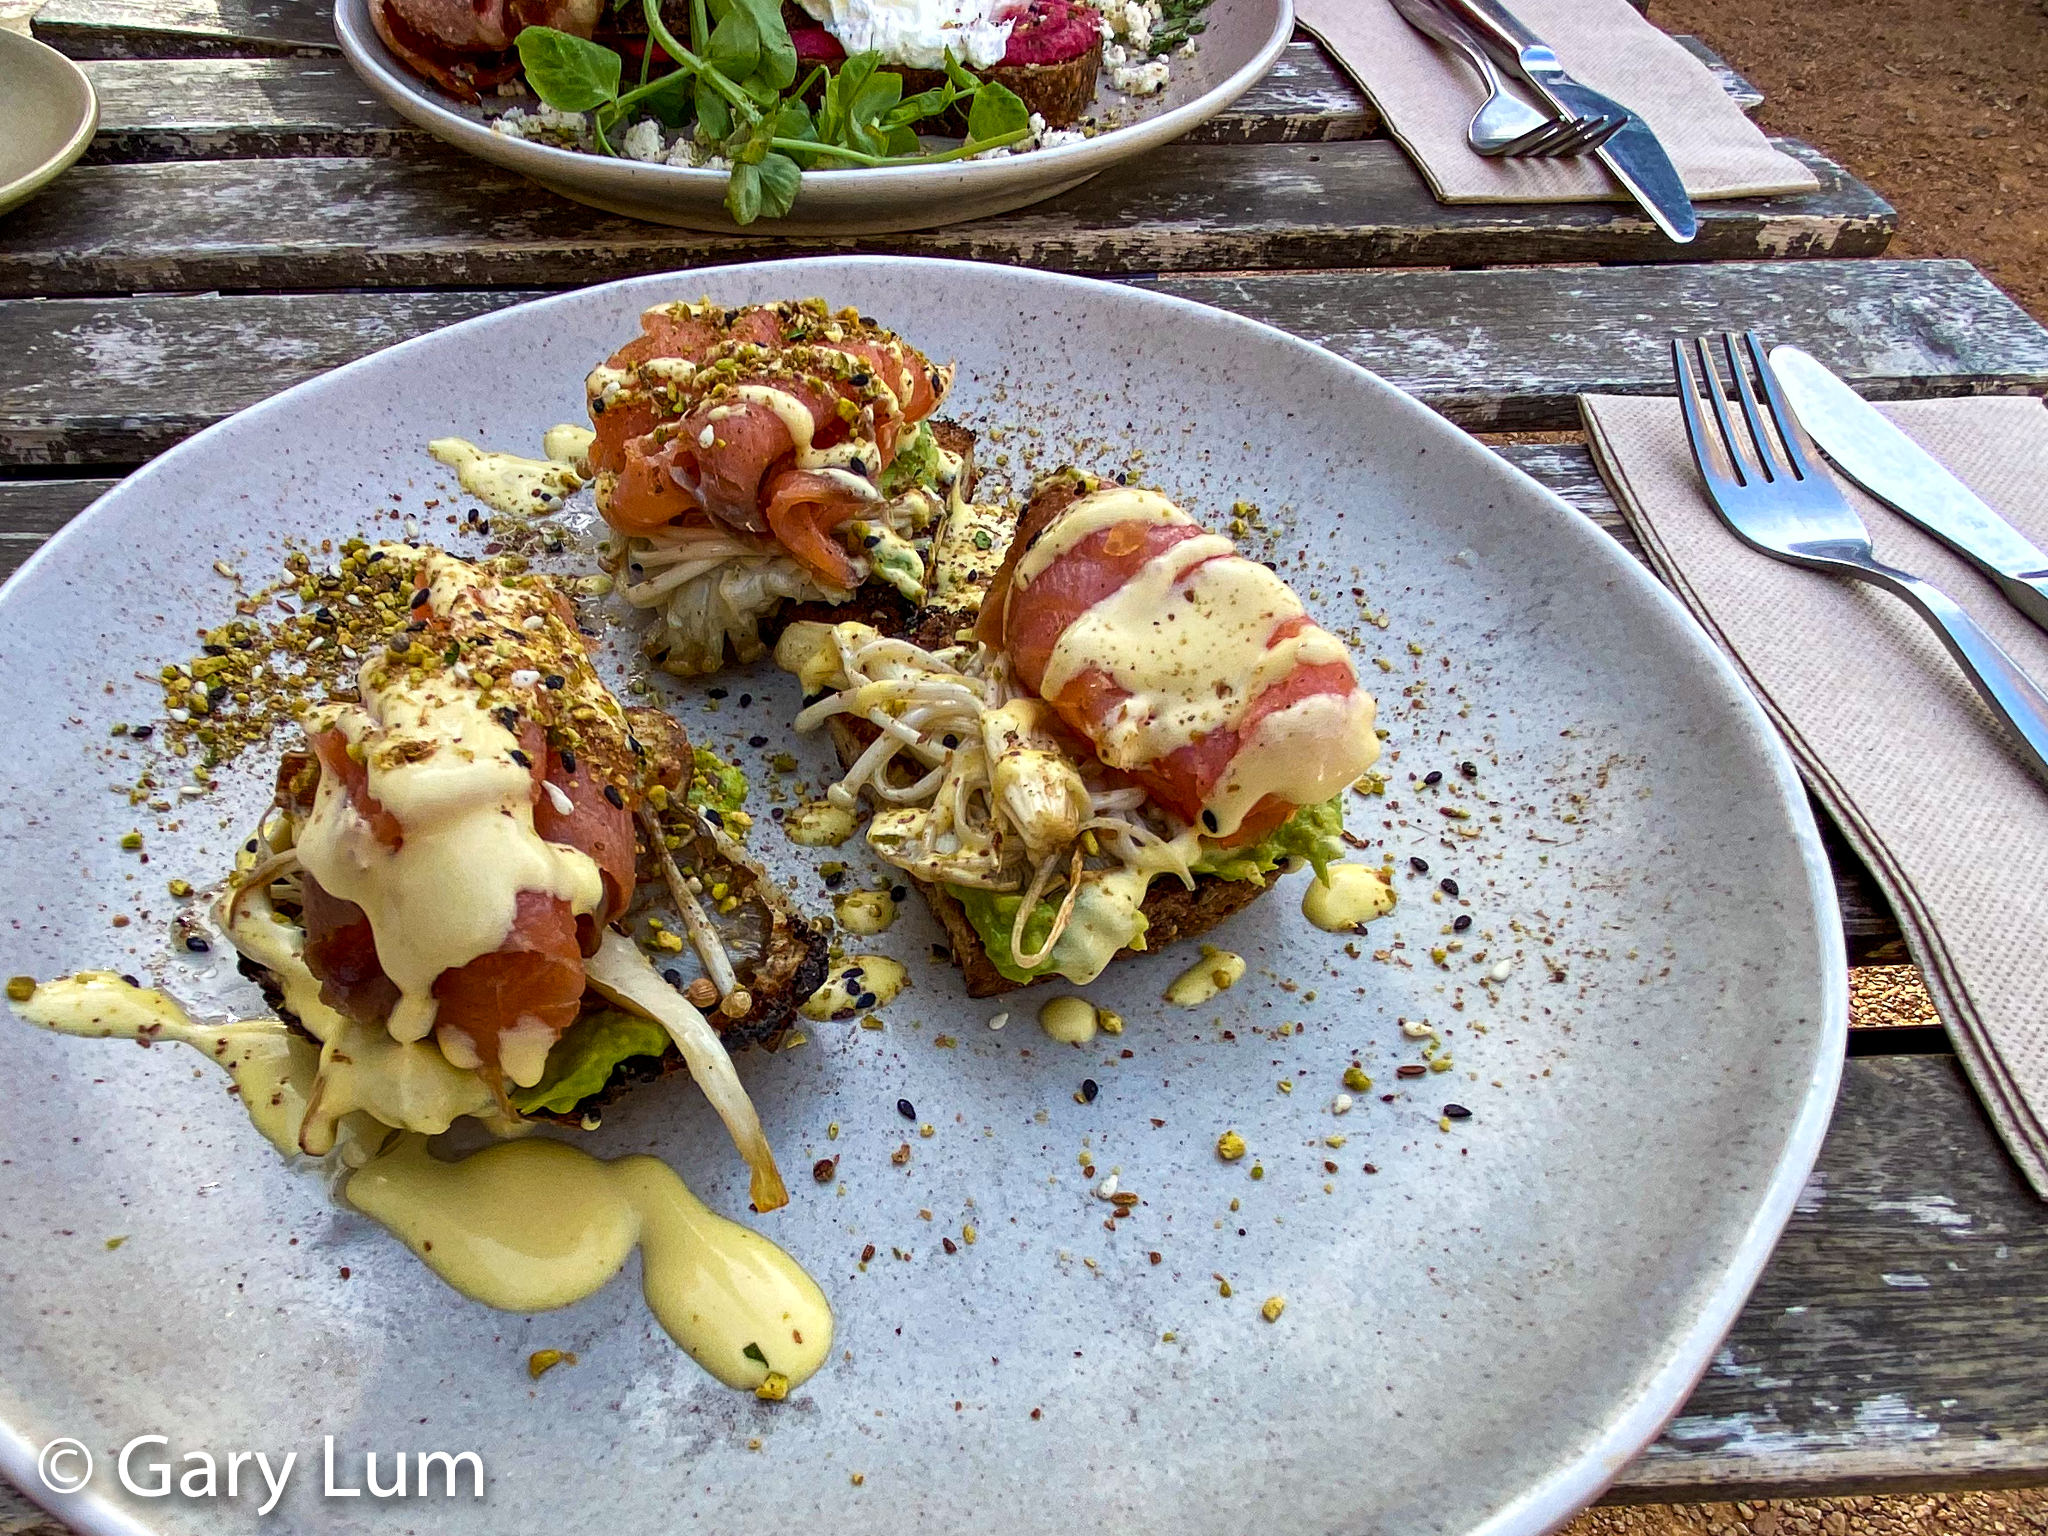 Smoked salmon, smashed avocado with Hollandaise sauce at Two Before Ten, Aranda. Gary Lum.